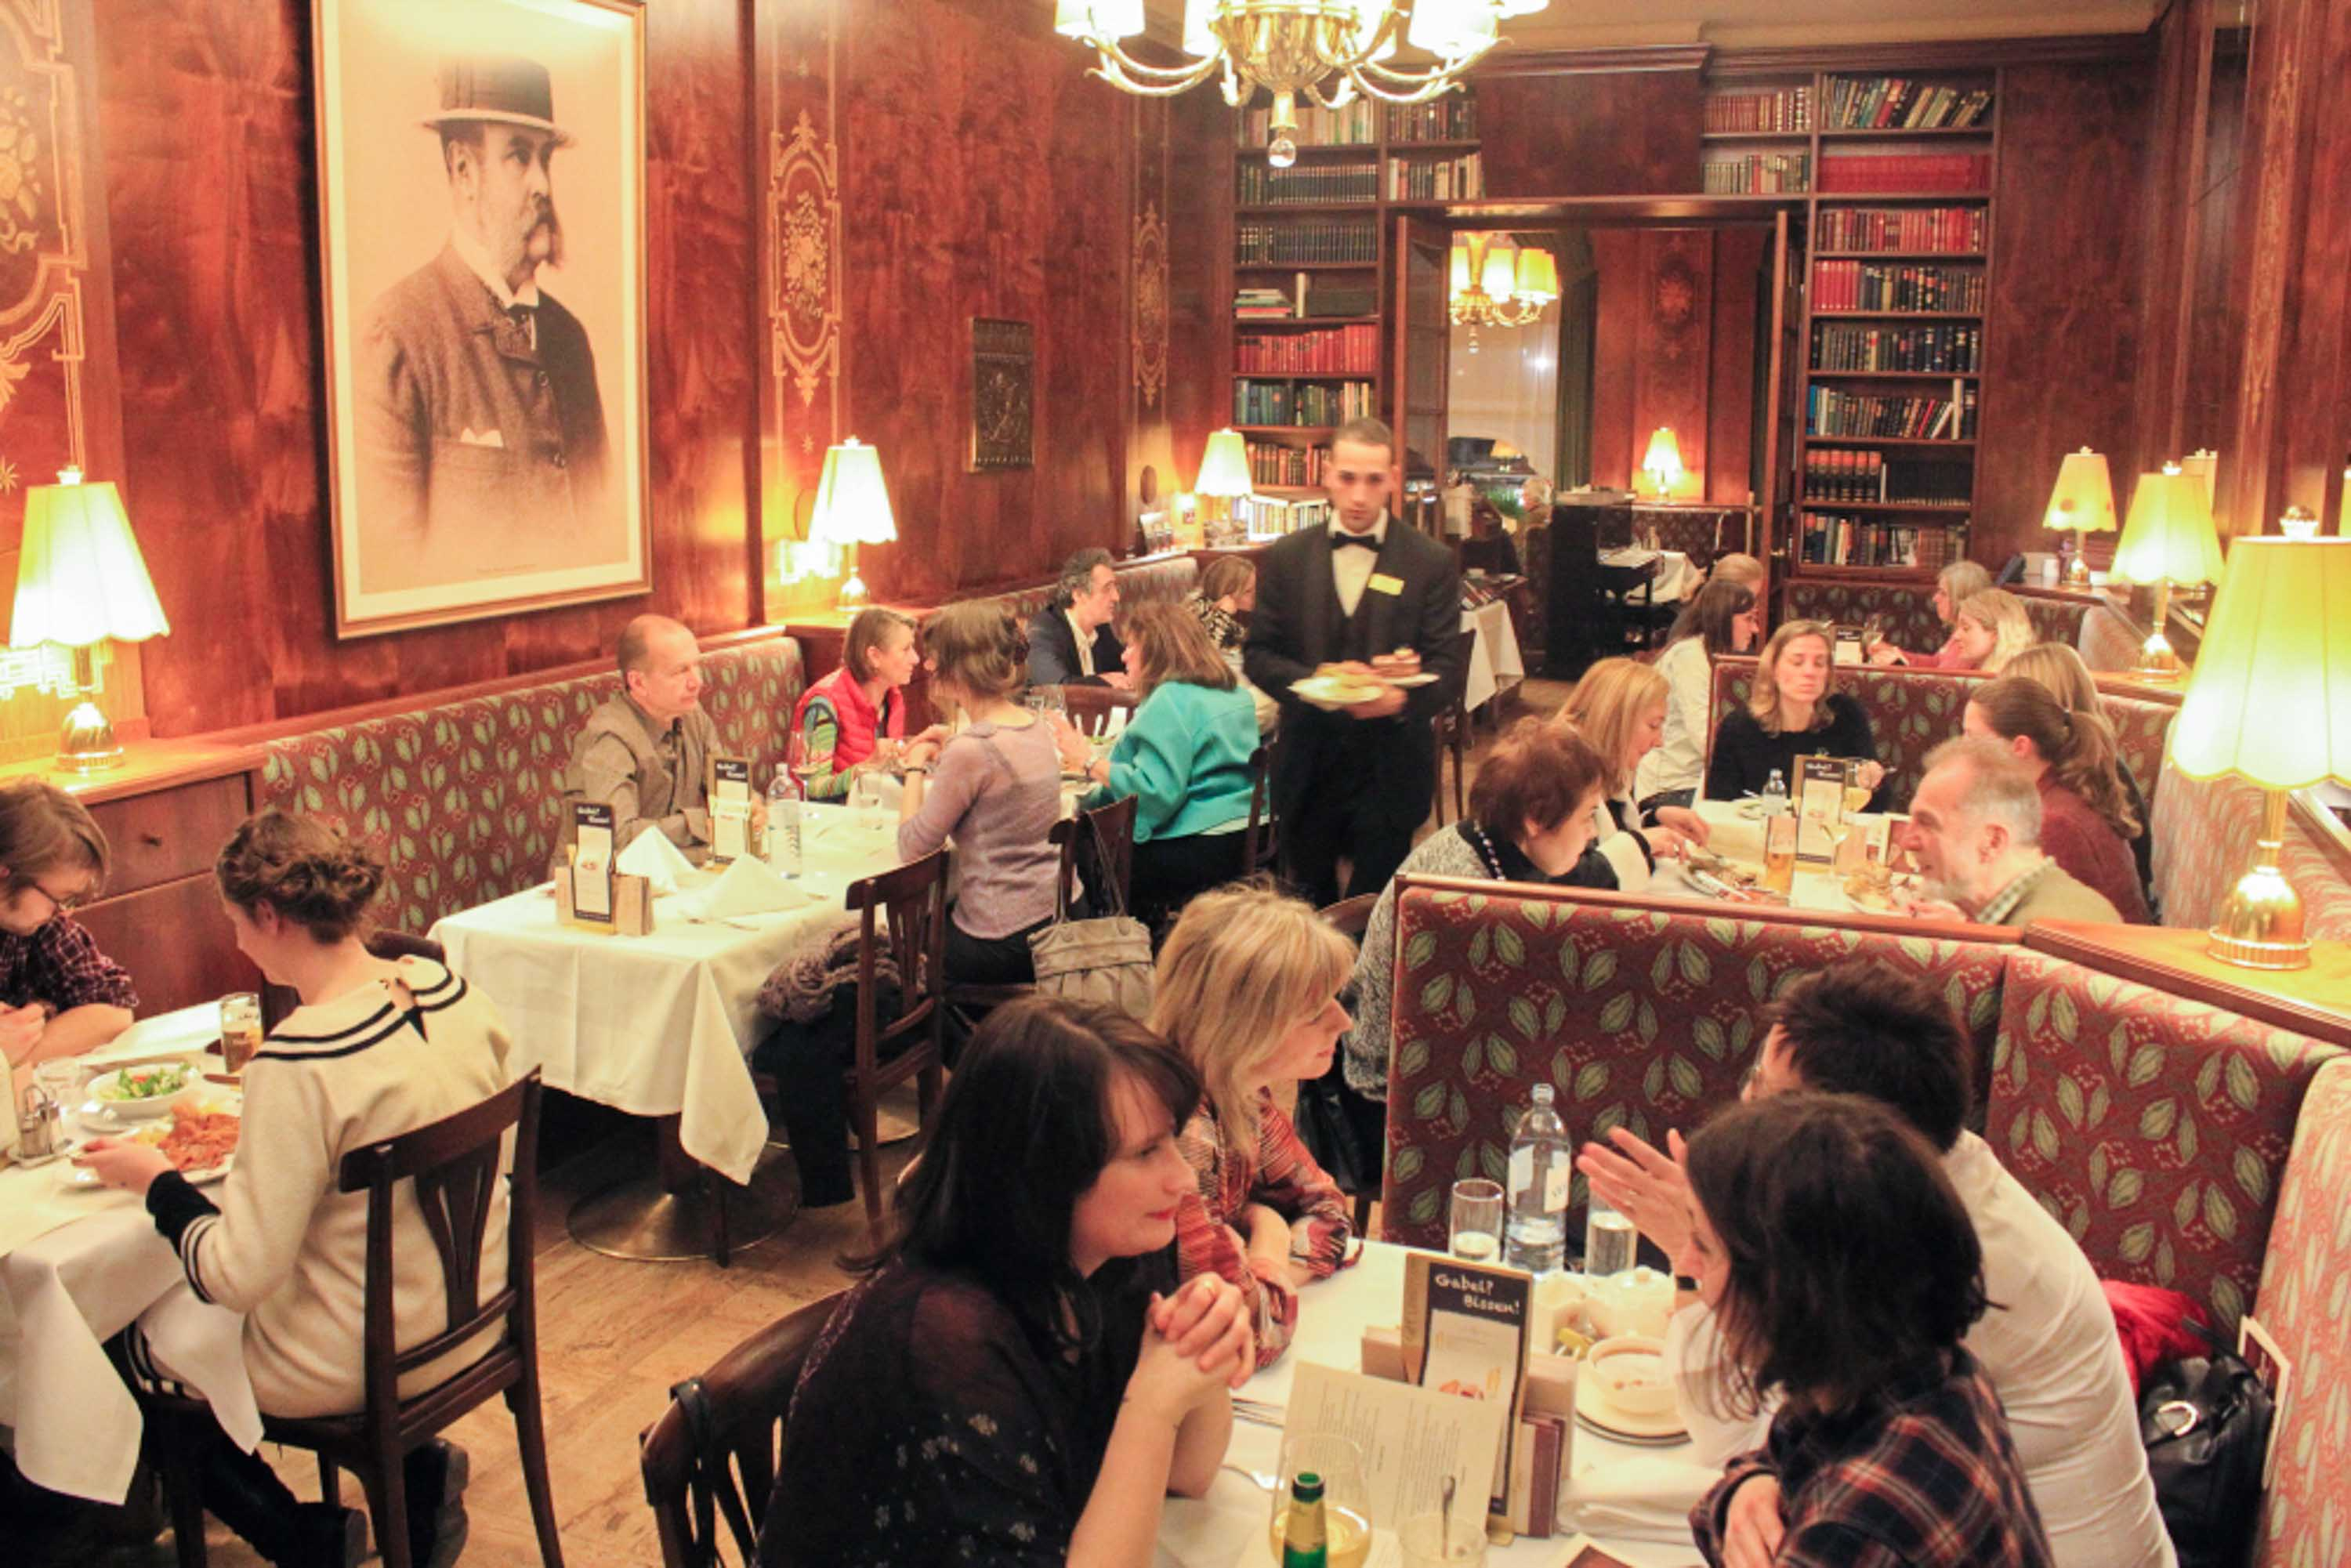 The Viennese cafés that force you to talk with strangers